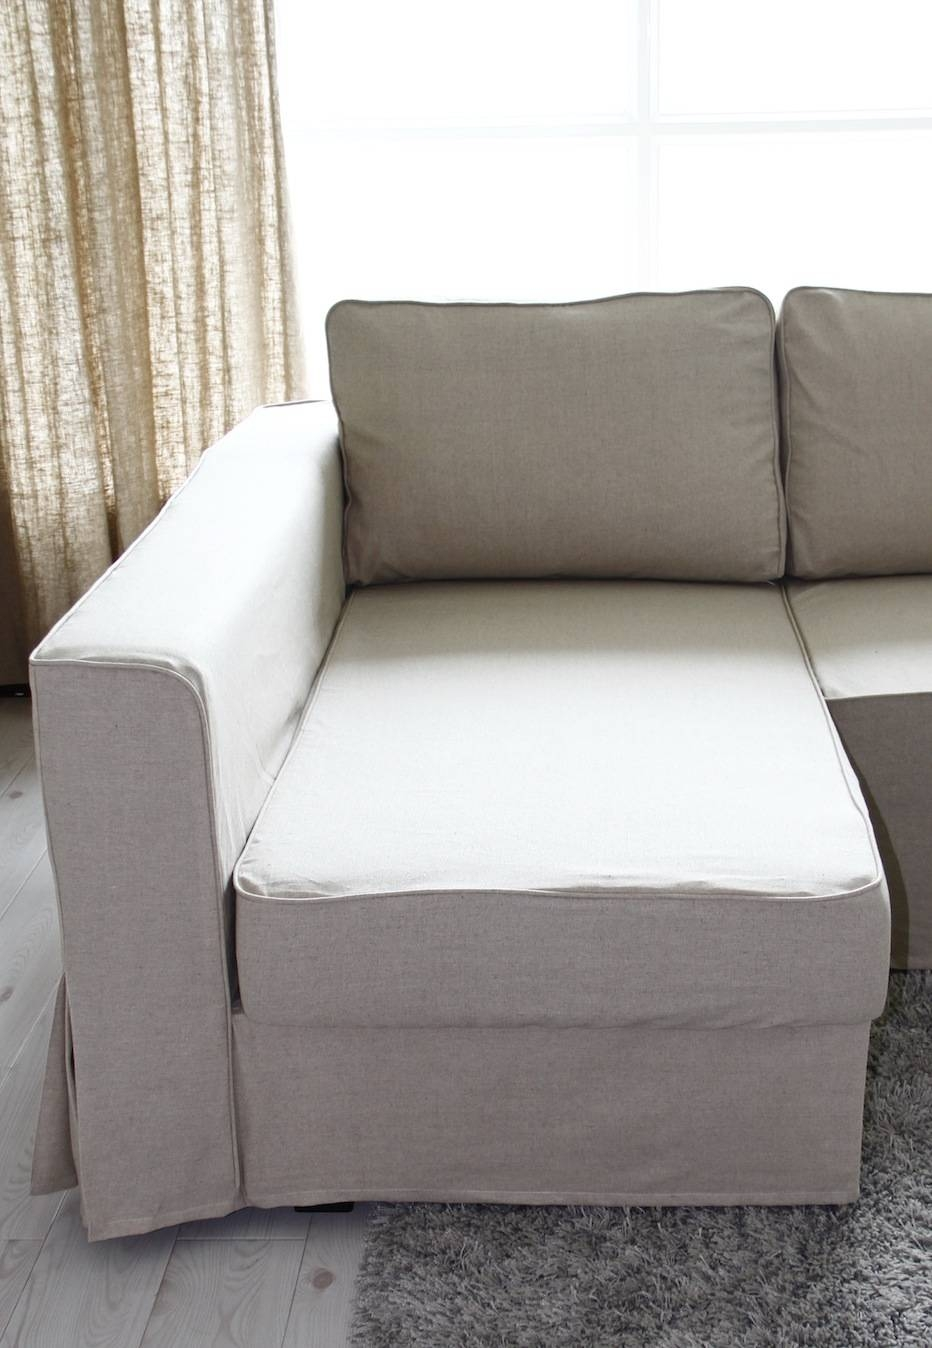 Furniture & Rug: Charming Slipcovers For Sofas With Cushions pertaining to Armless Sofa Slipcovers (Image 3 of 15)